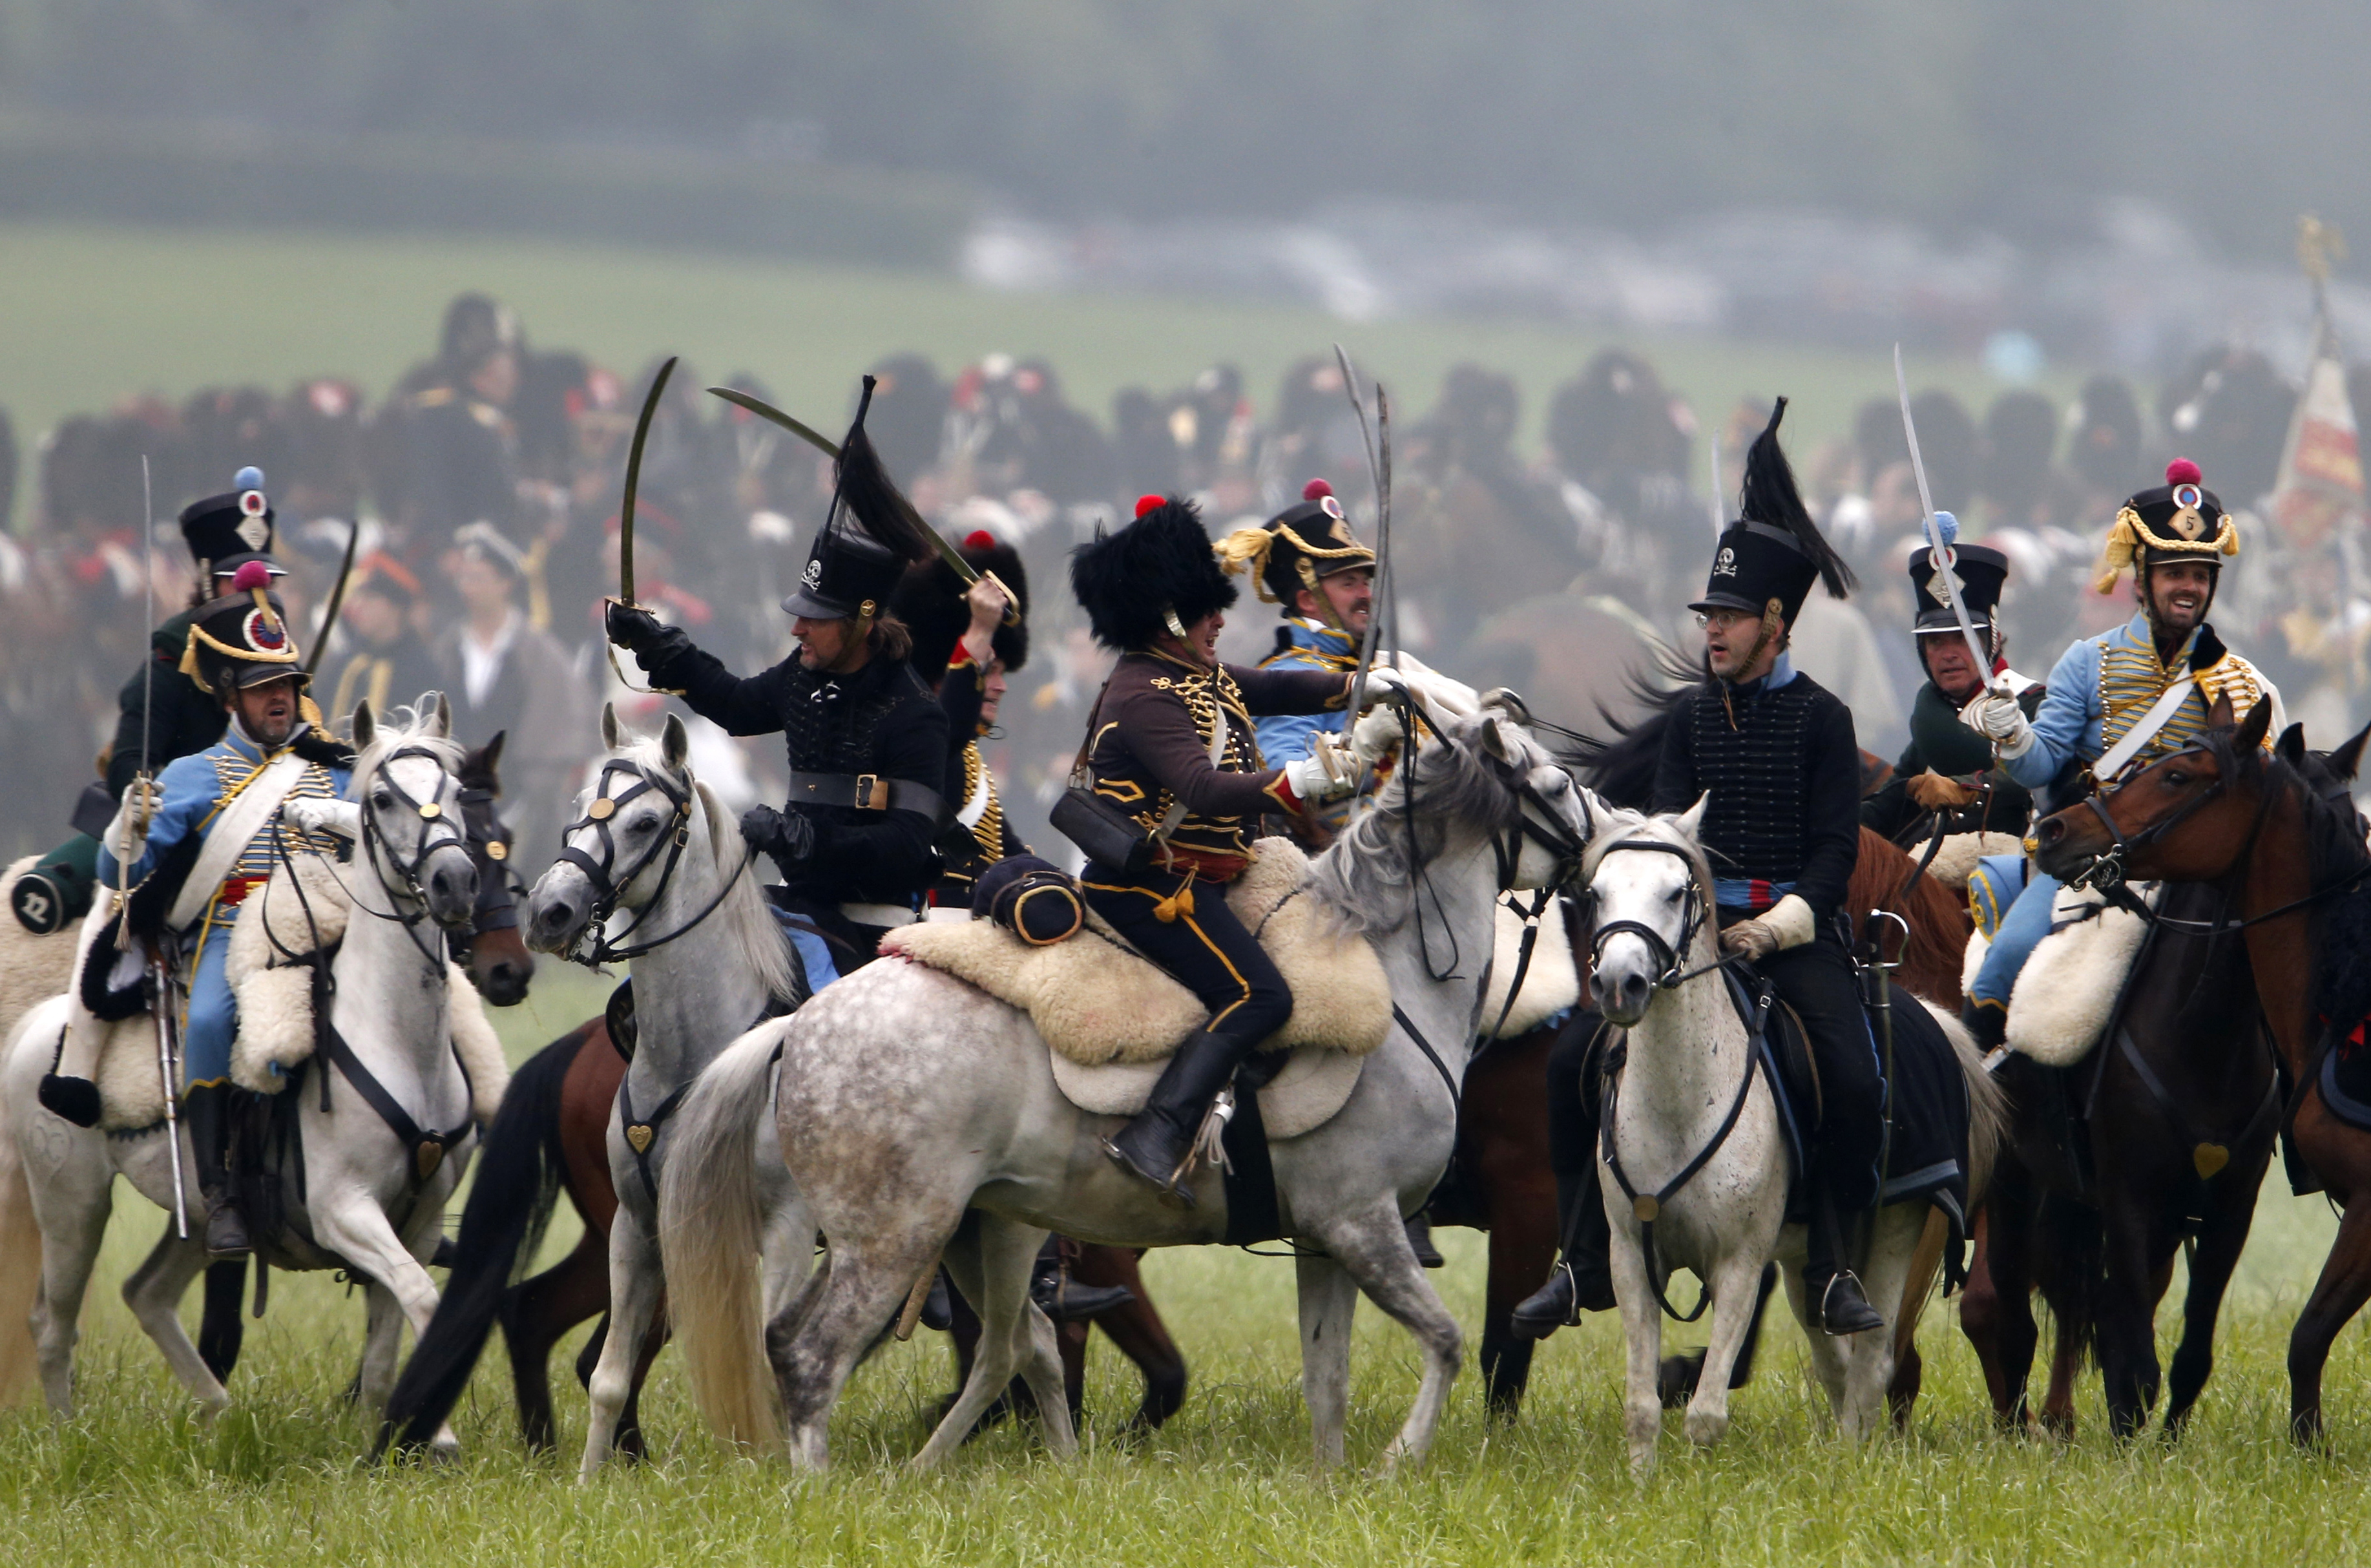 """Performers take part in the re-enactment of """"The Allied Counterattack """" battle as part of the bicentennial celebrations for the Battle of Waterloo"""